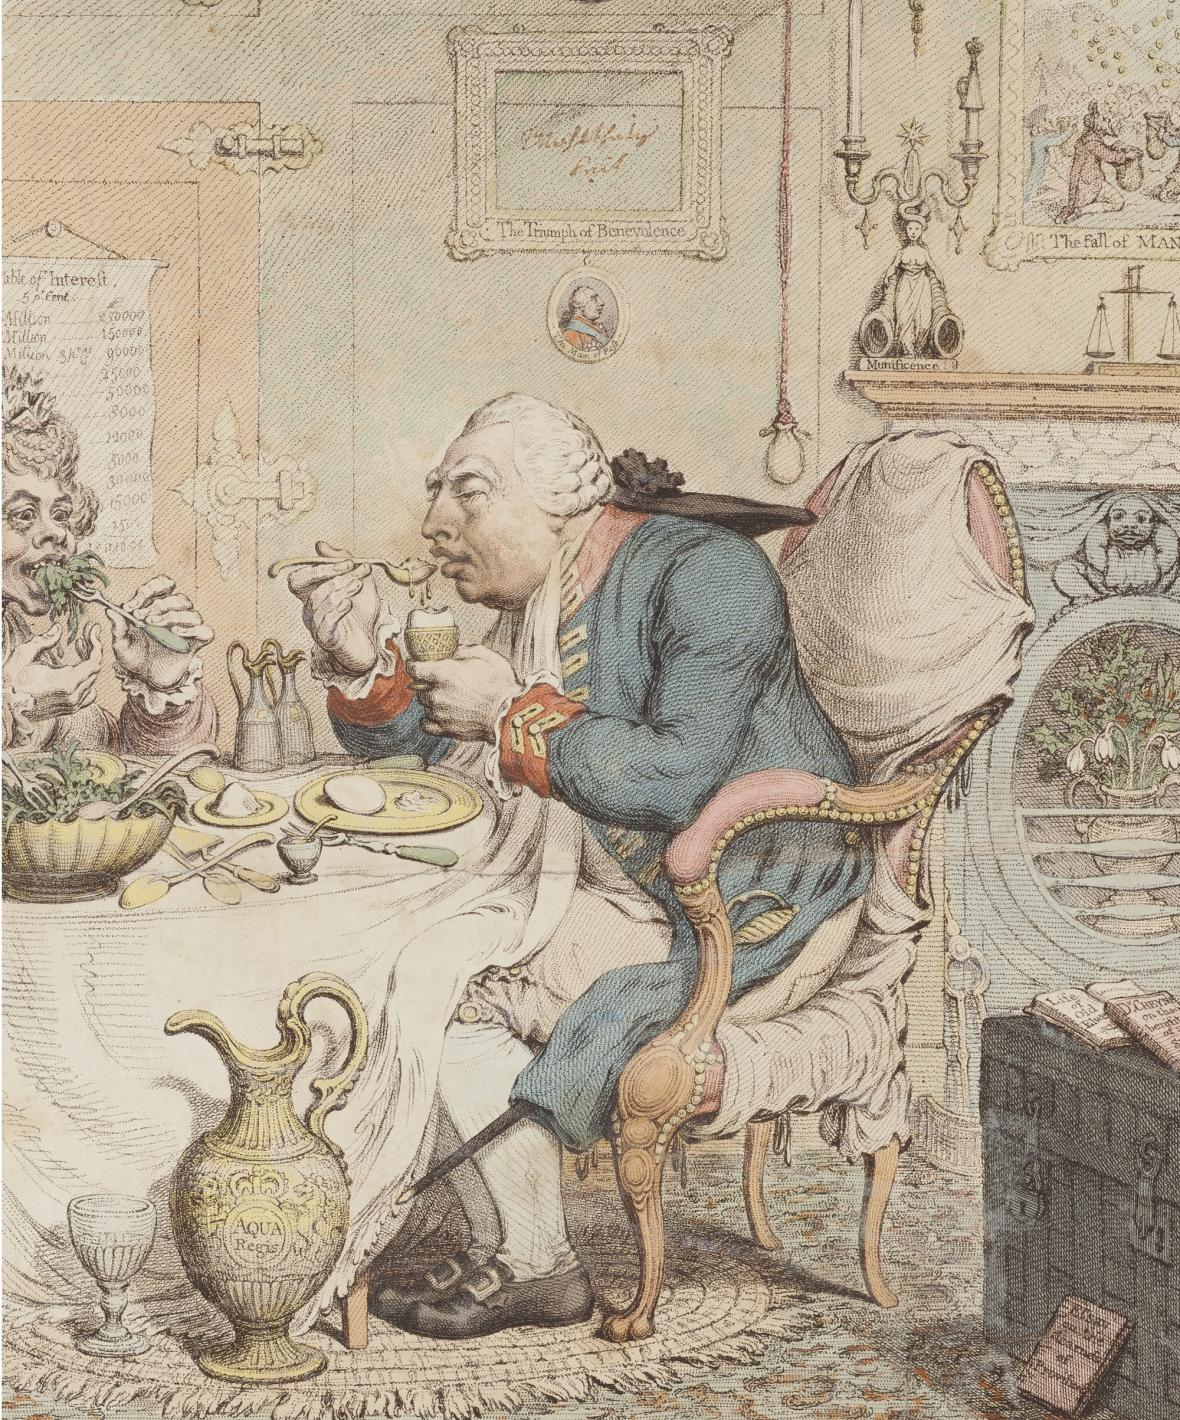 James Gillray / Temperance enjoying a frugal meal (Střídmost vychutnává skromnou krmi), 1792